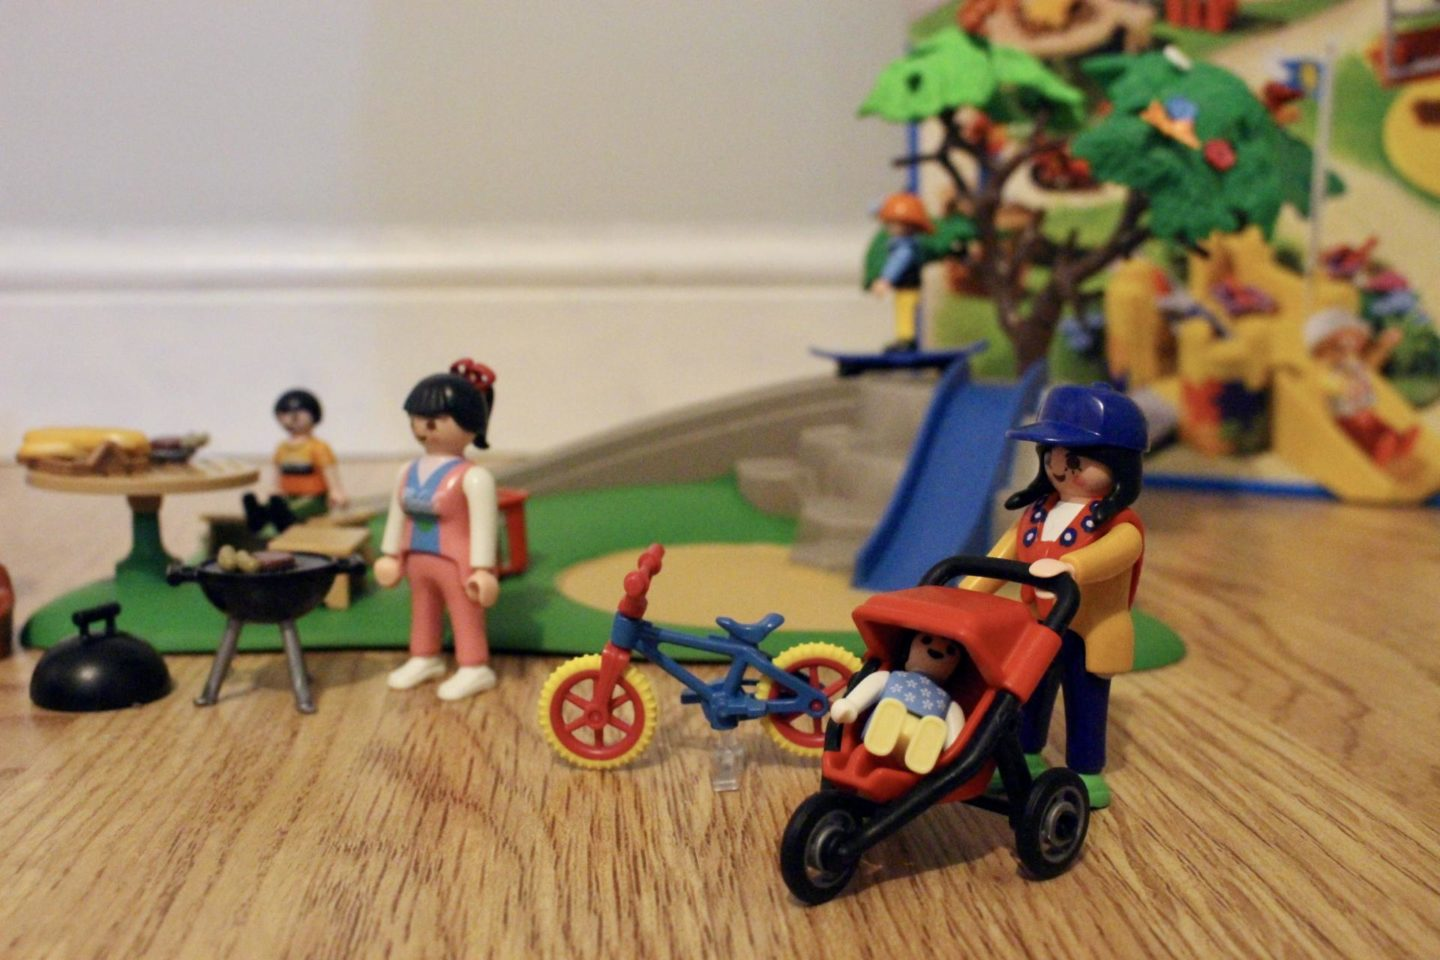 Playmobil City Life Playground Play set |Review|